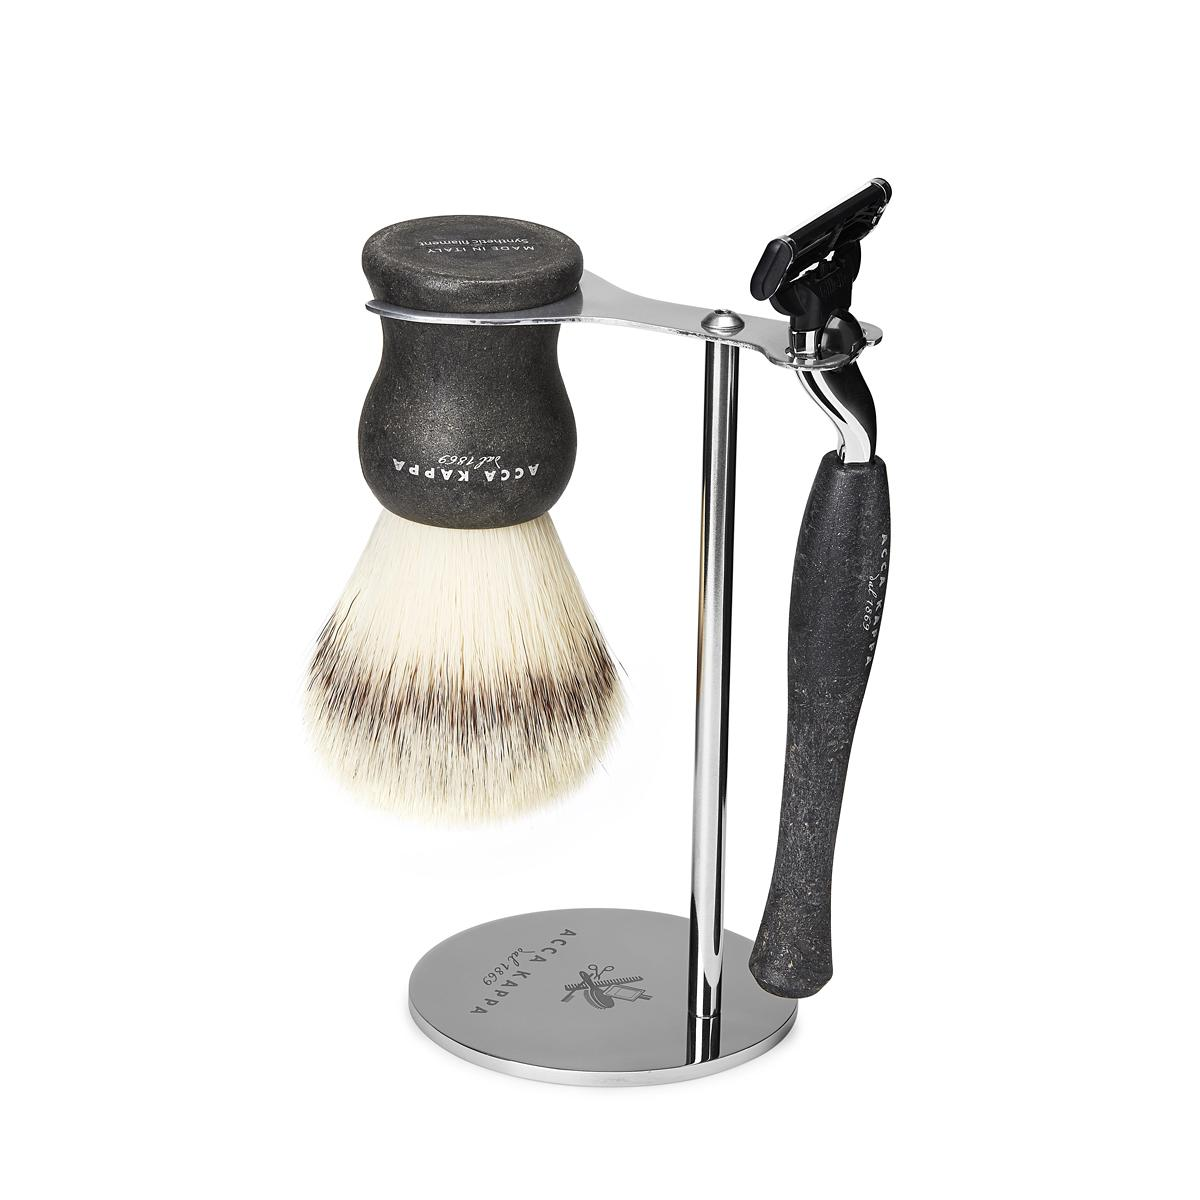 ACCA KAPPA 3-Piece Natural Black Shaving Set with Synthetic Fibre Brush, Mach3 Razor and Stand